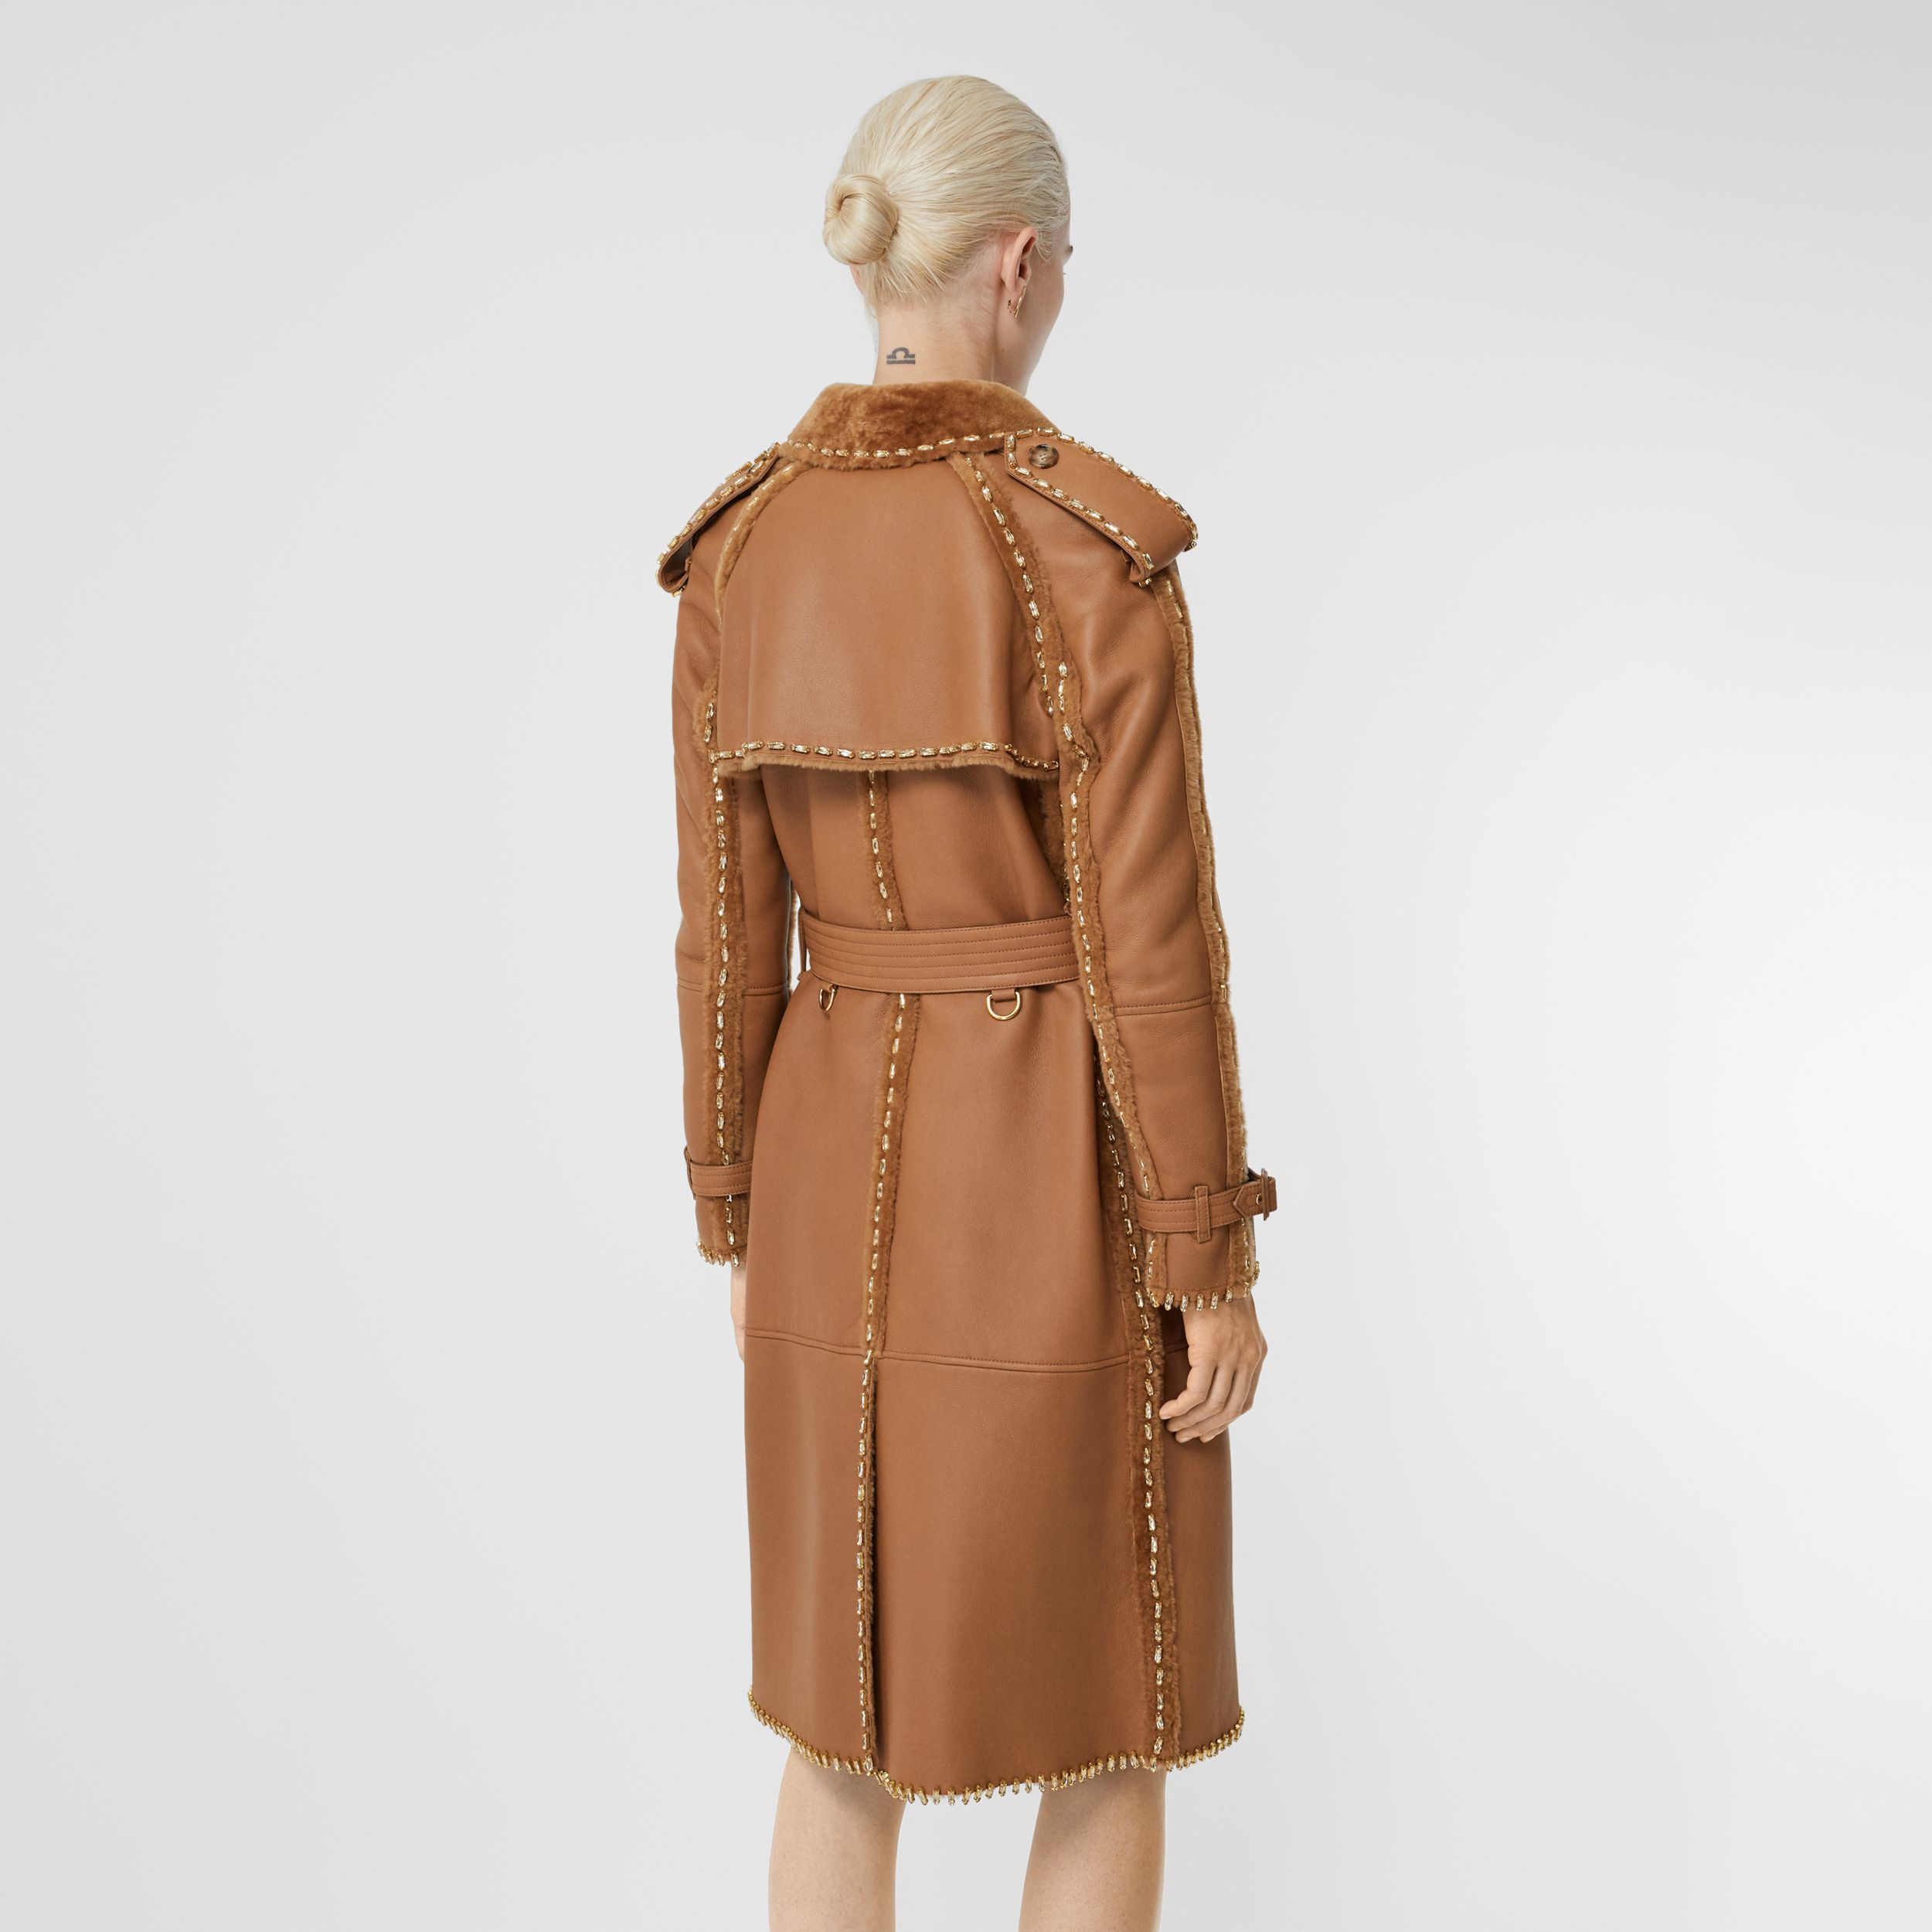 Embellished Shearling Trench Coat in Warm Camel - Women | Burberry Australia - 3